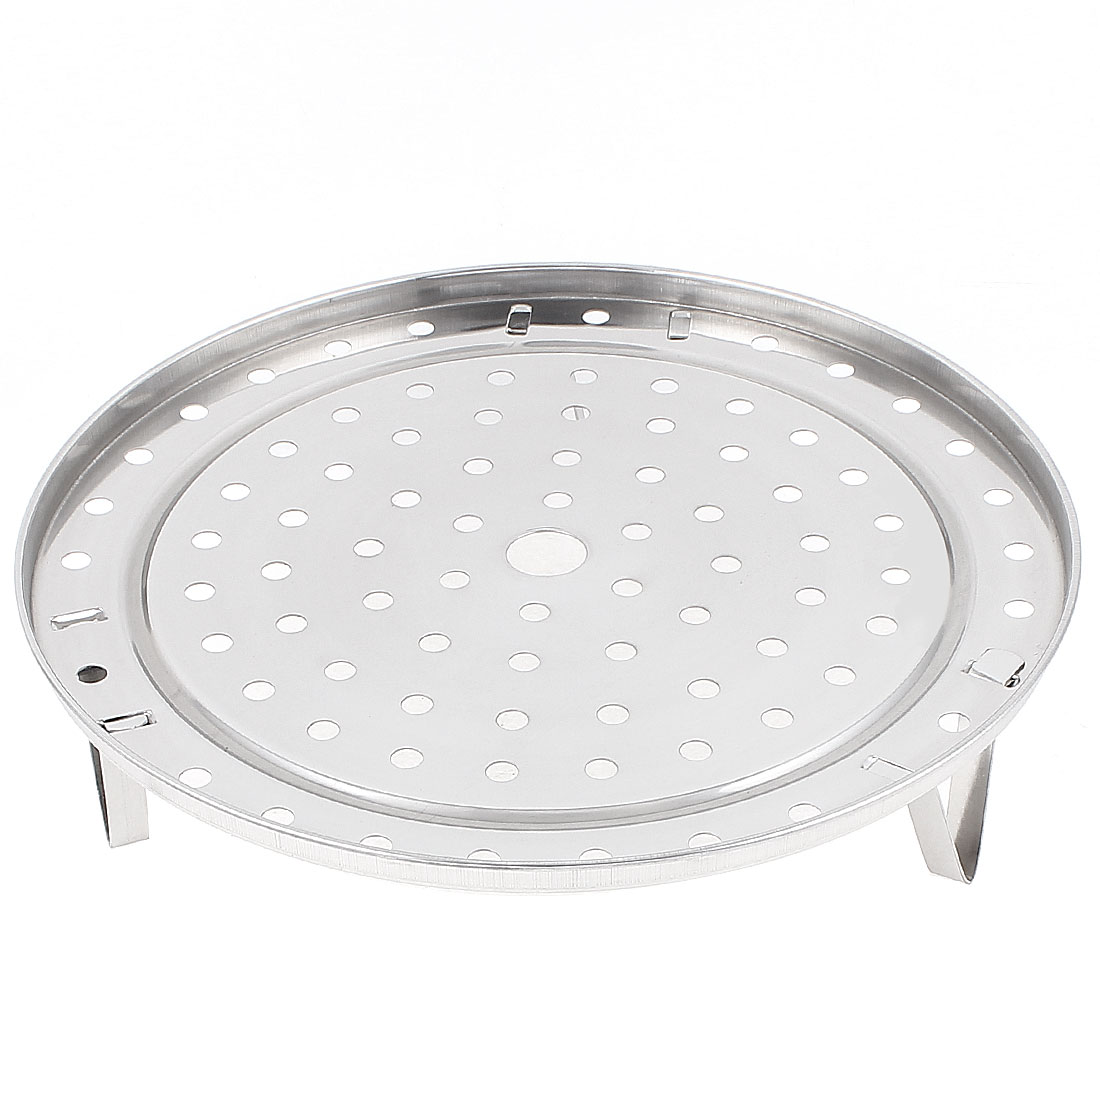 Round Stainless Steel Food Cooking Steamer Rack Cookware 9.4 Inch Dia